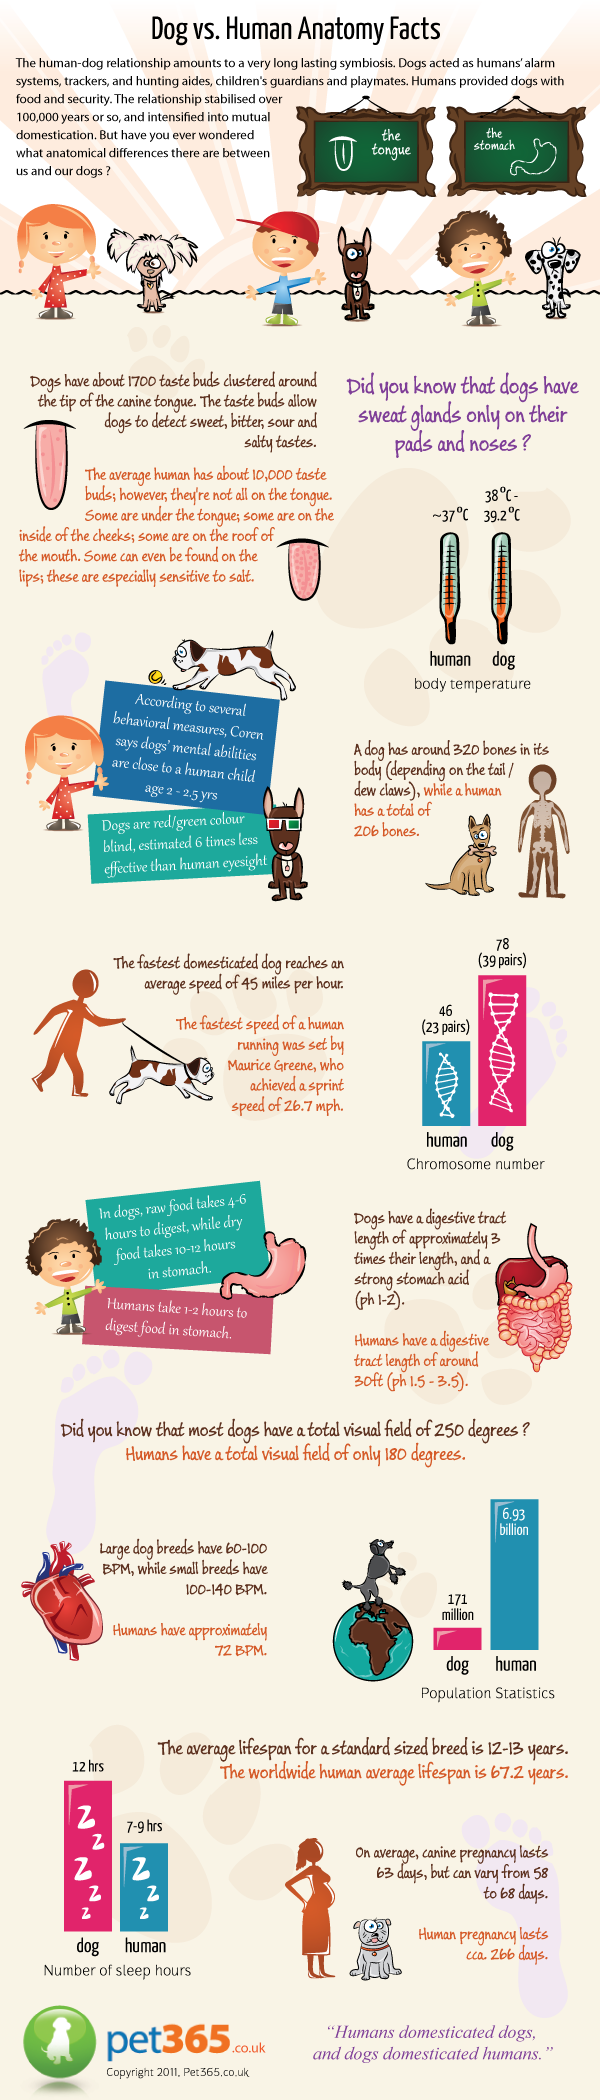 Dog vs Human Anatomy Fact